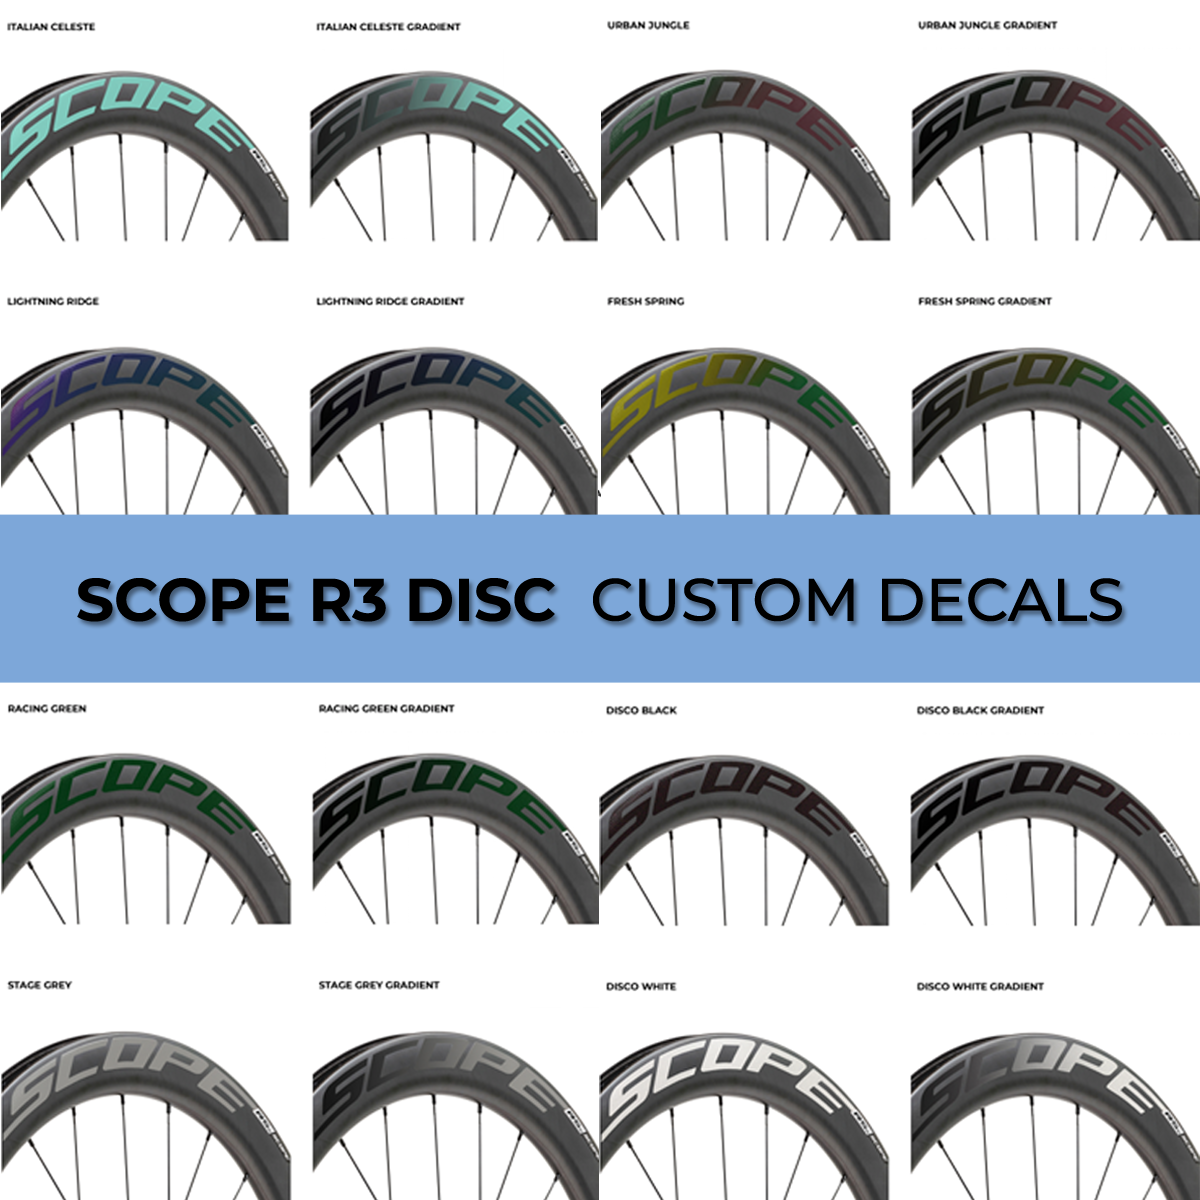 Giant Cycle Wheel Decal Sticker Carbon Wheel Stickers Giant Wheel 6 sizes avail.